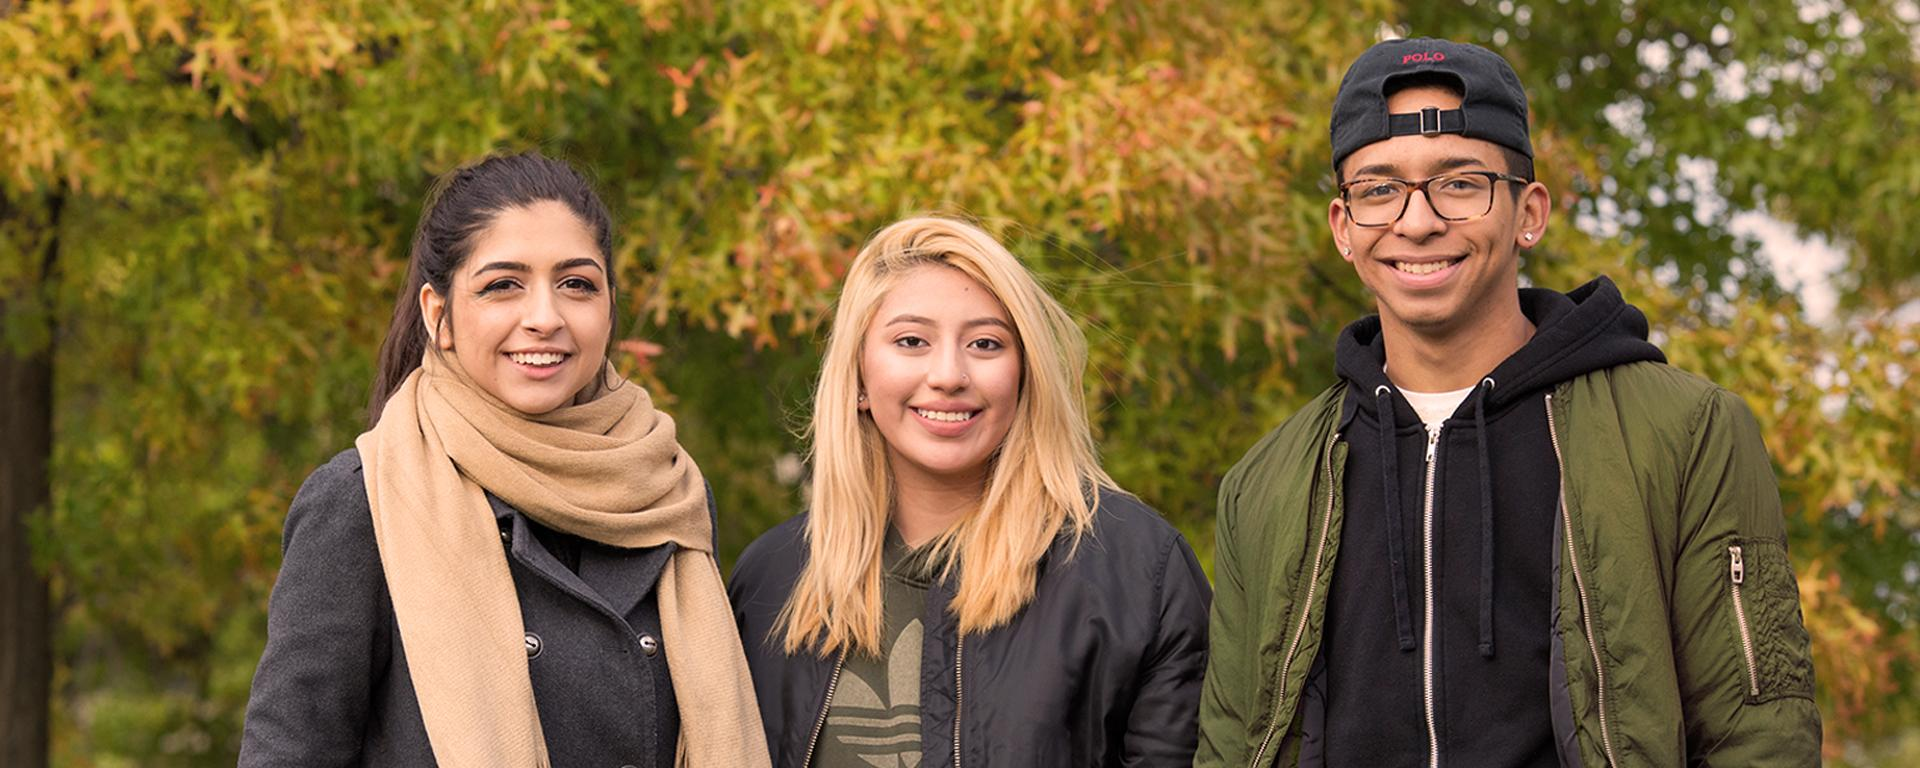 Three students with an autumnal campus background